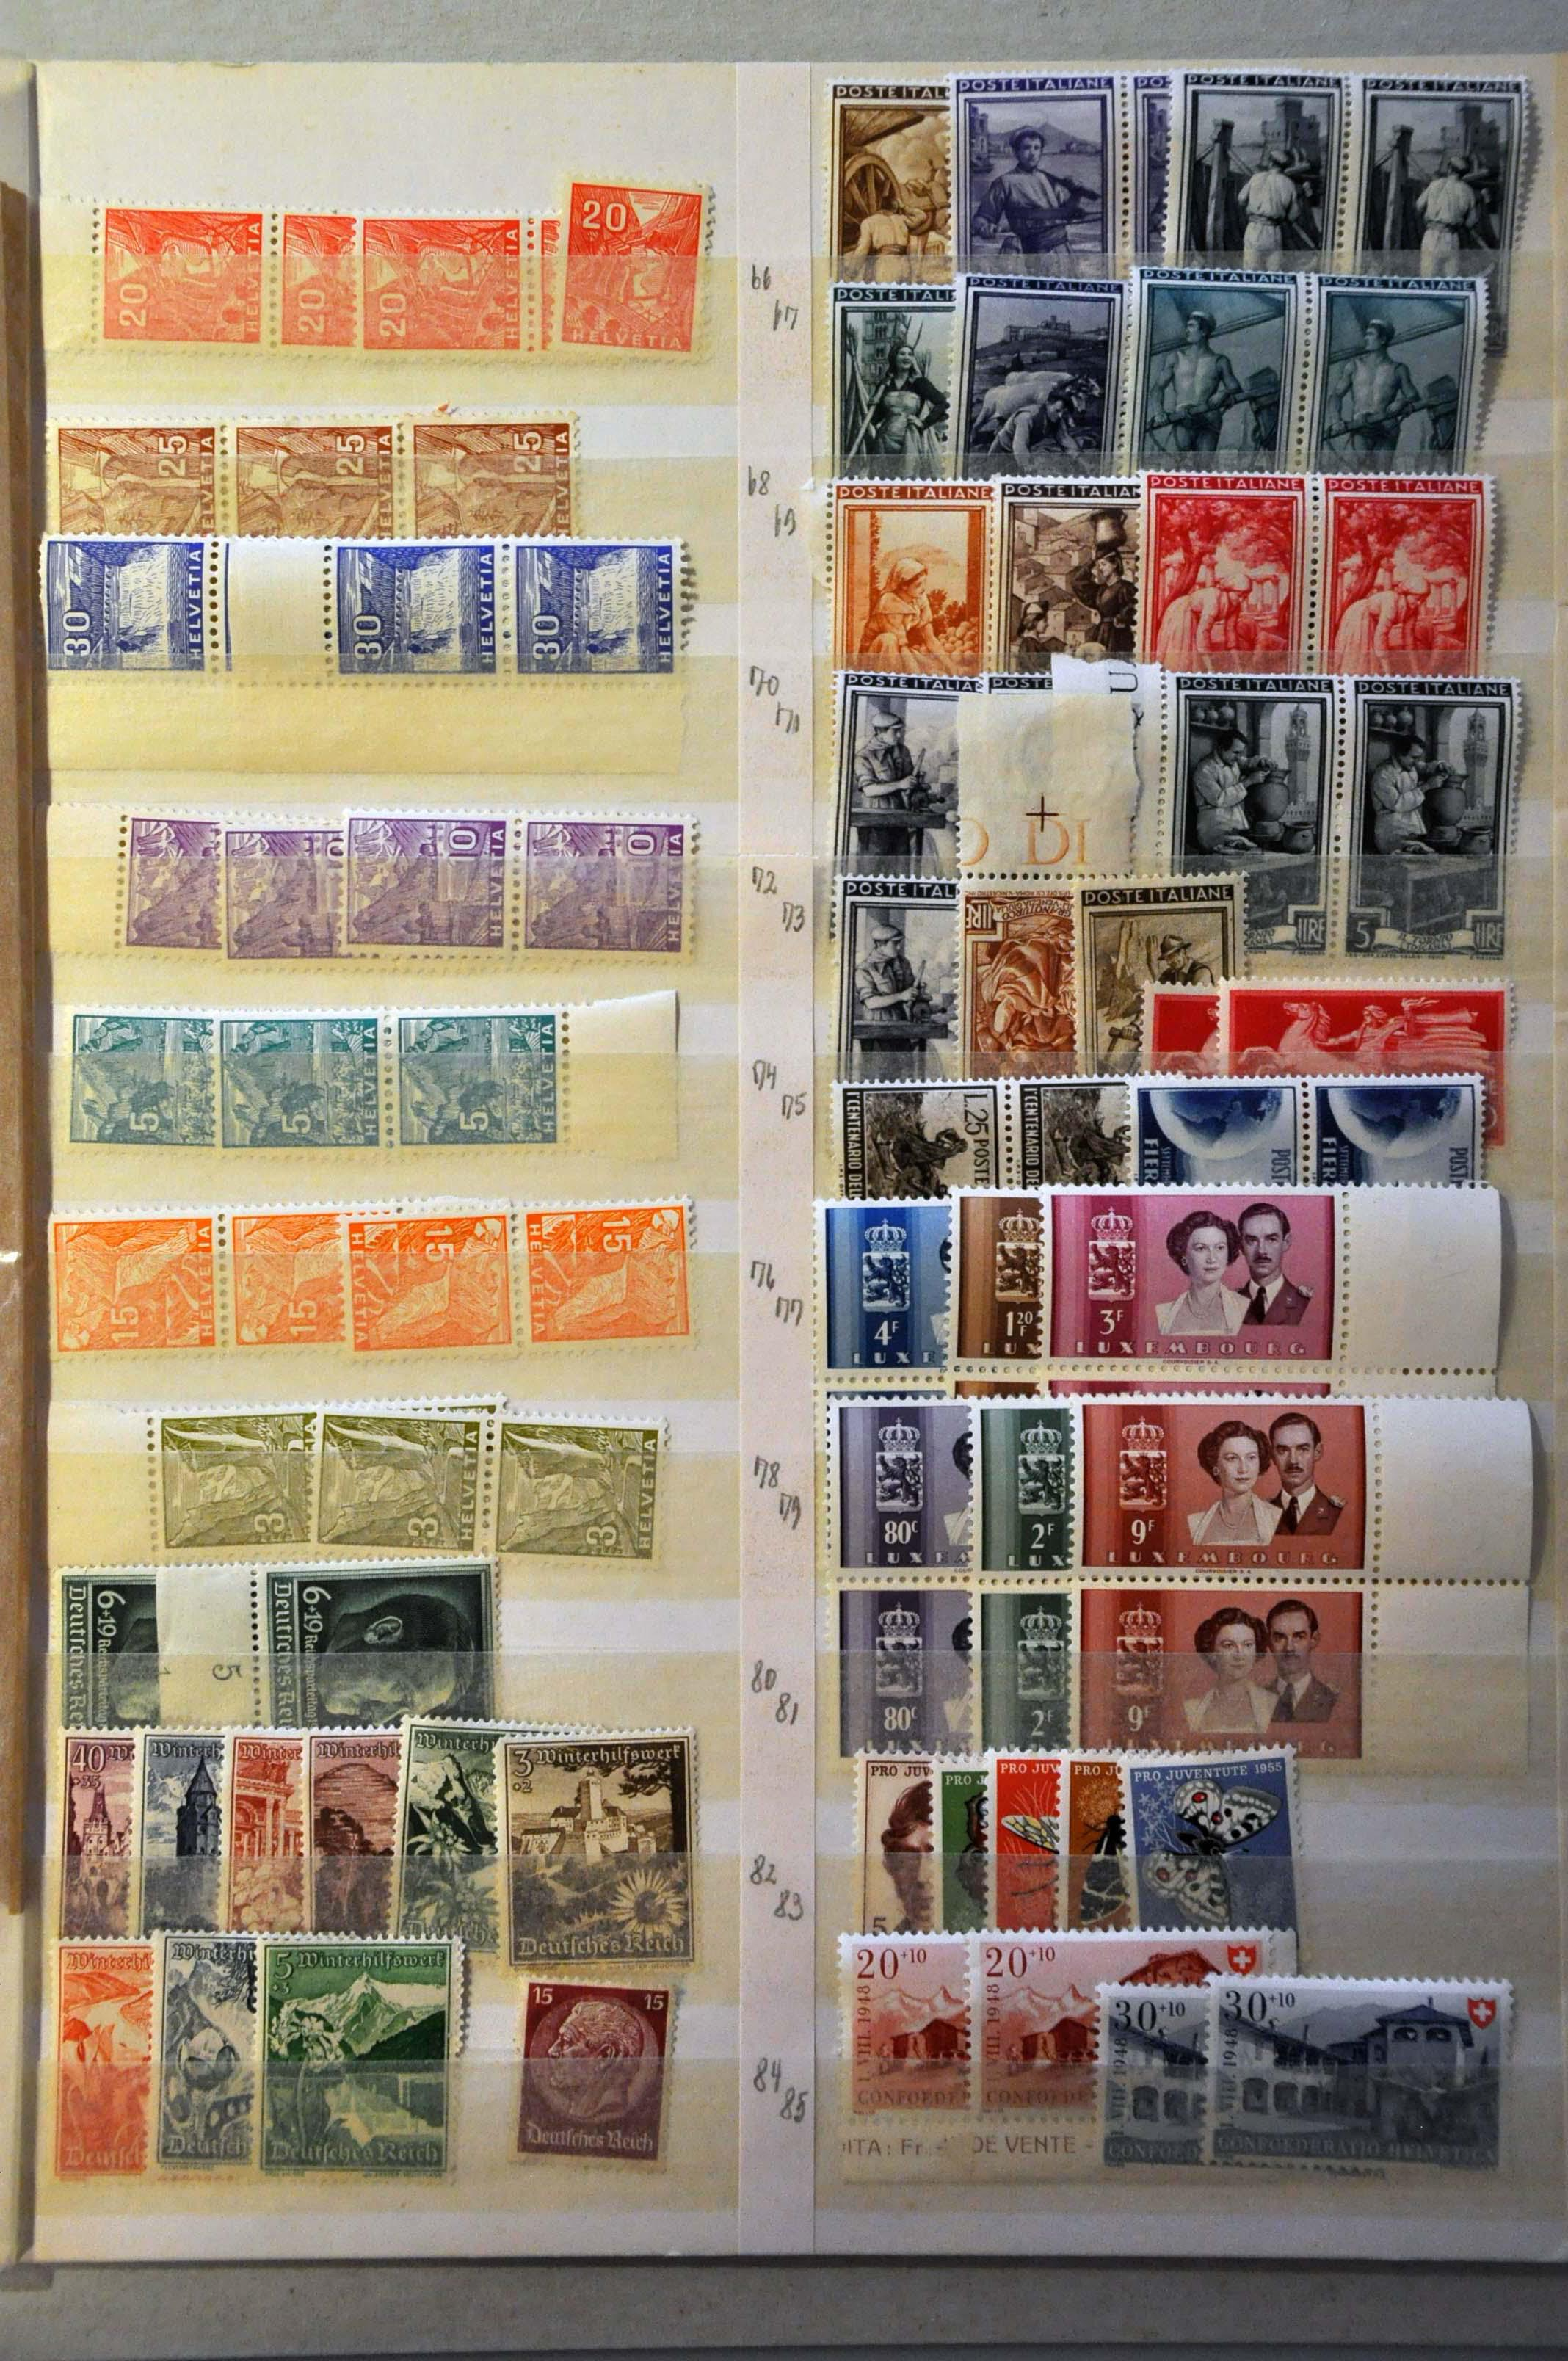 Lot 383 - European Countries West European Countries -  Corinphila Veilingen Auction 244 -Netherlands and former colonies, WW2 Postal History, Bosnia, German and British colonies, Egypt. - Day 1